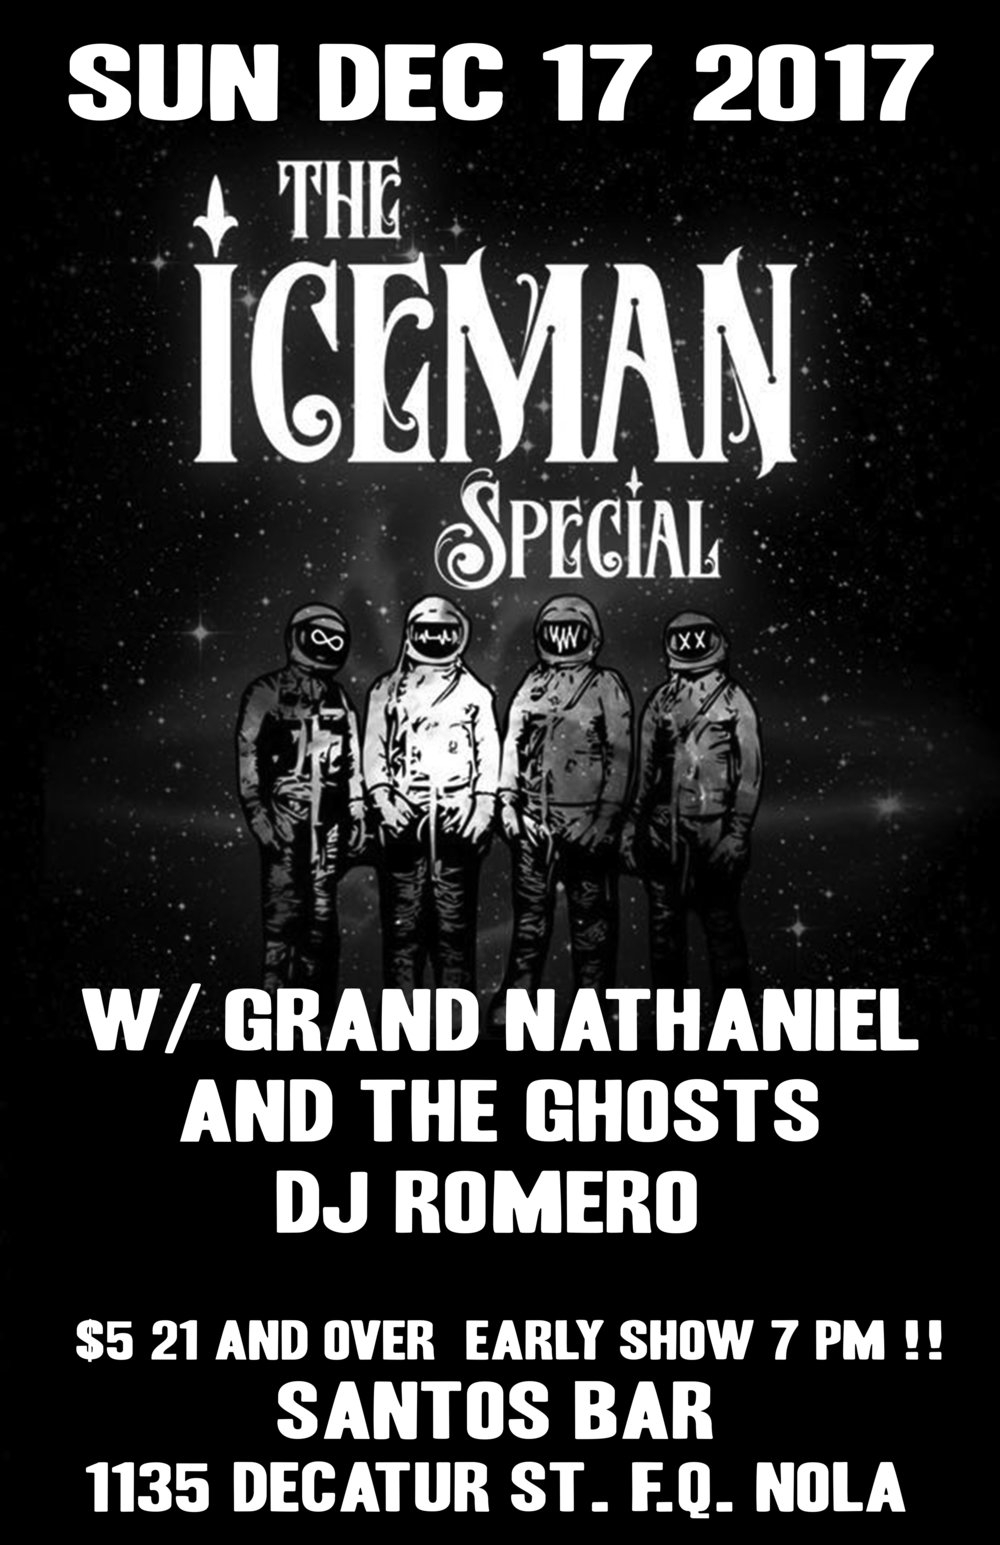 iceman special flyer.jpg